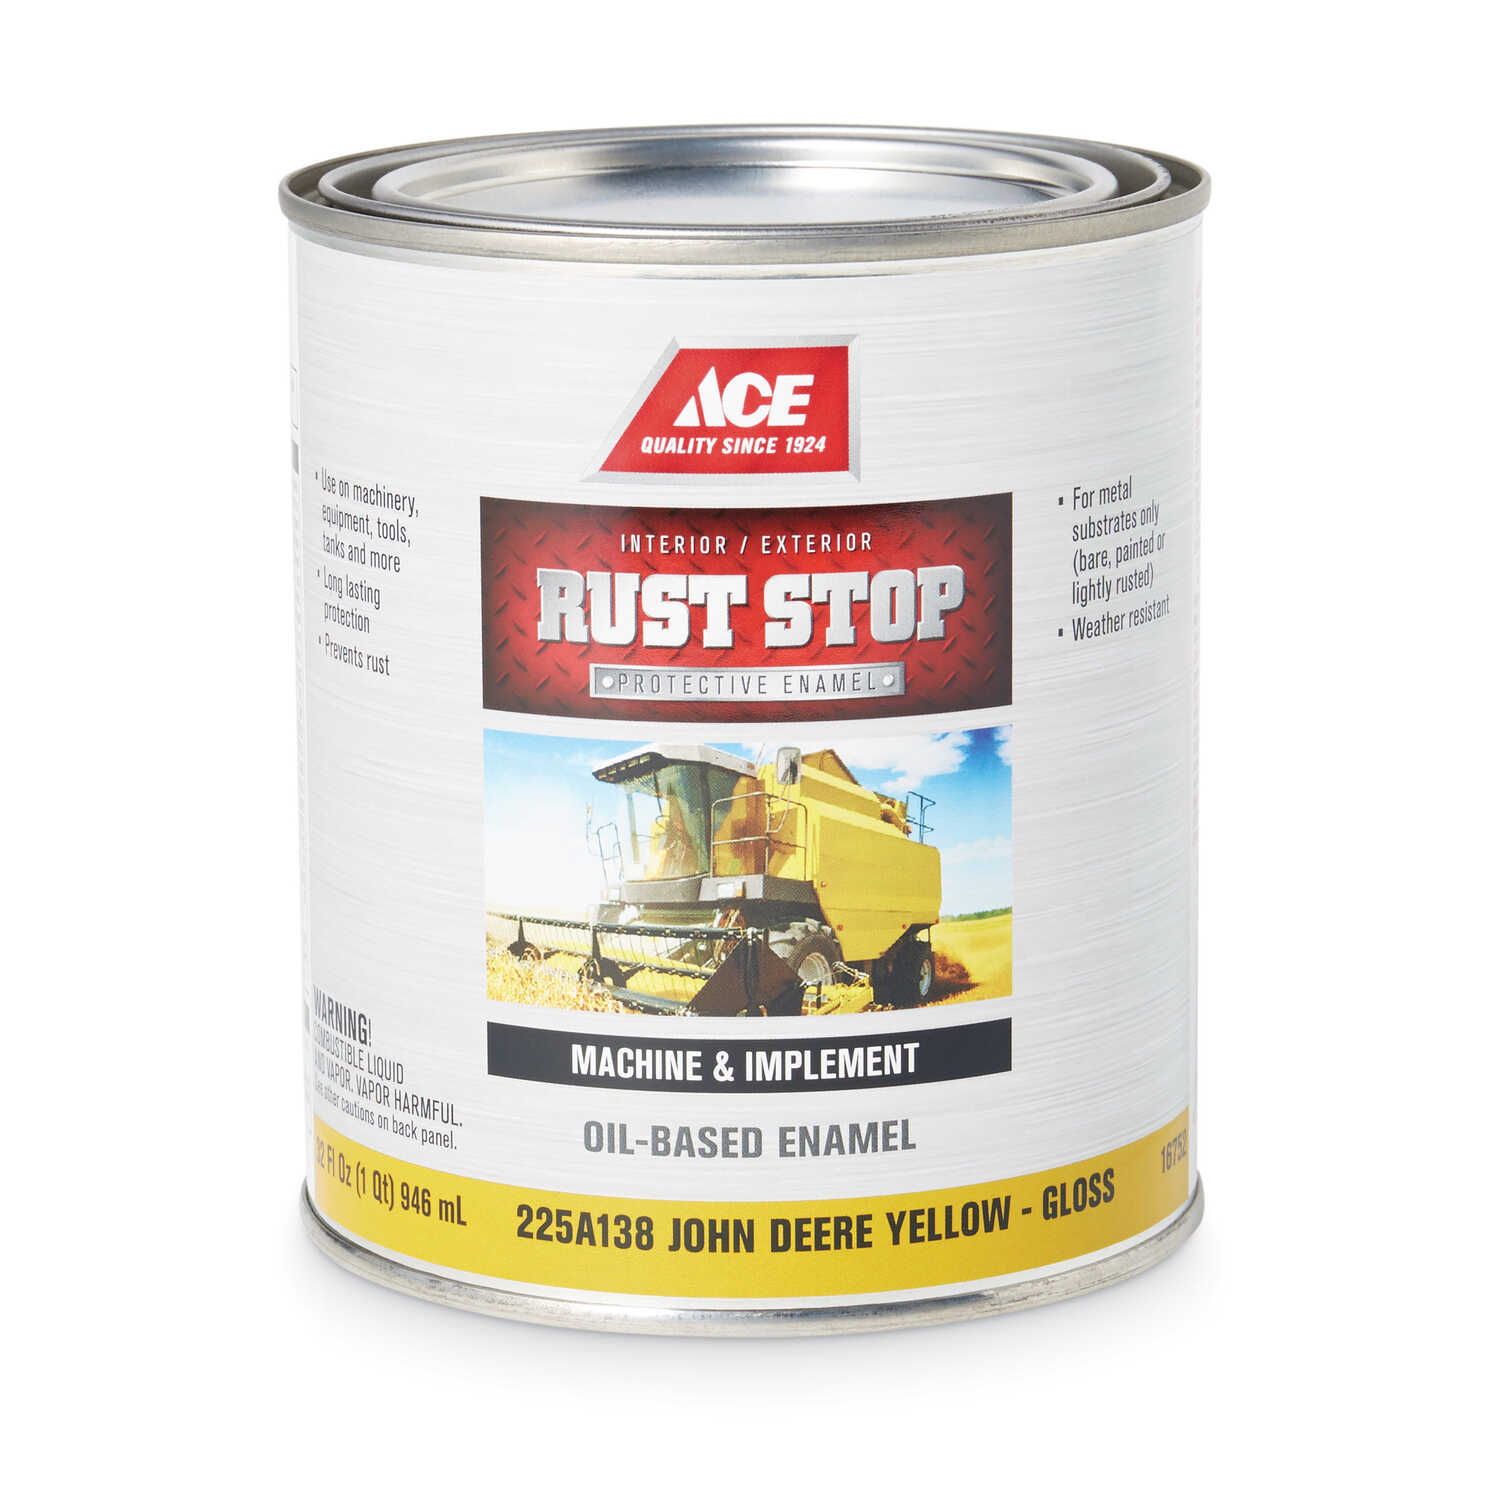 Ace  Rust Stop  Indoor and Outdoor  Interior/Exterior  John Deere Yellow  1 qt. Rust Prevention Pain